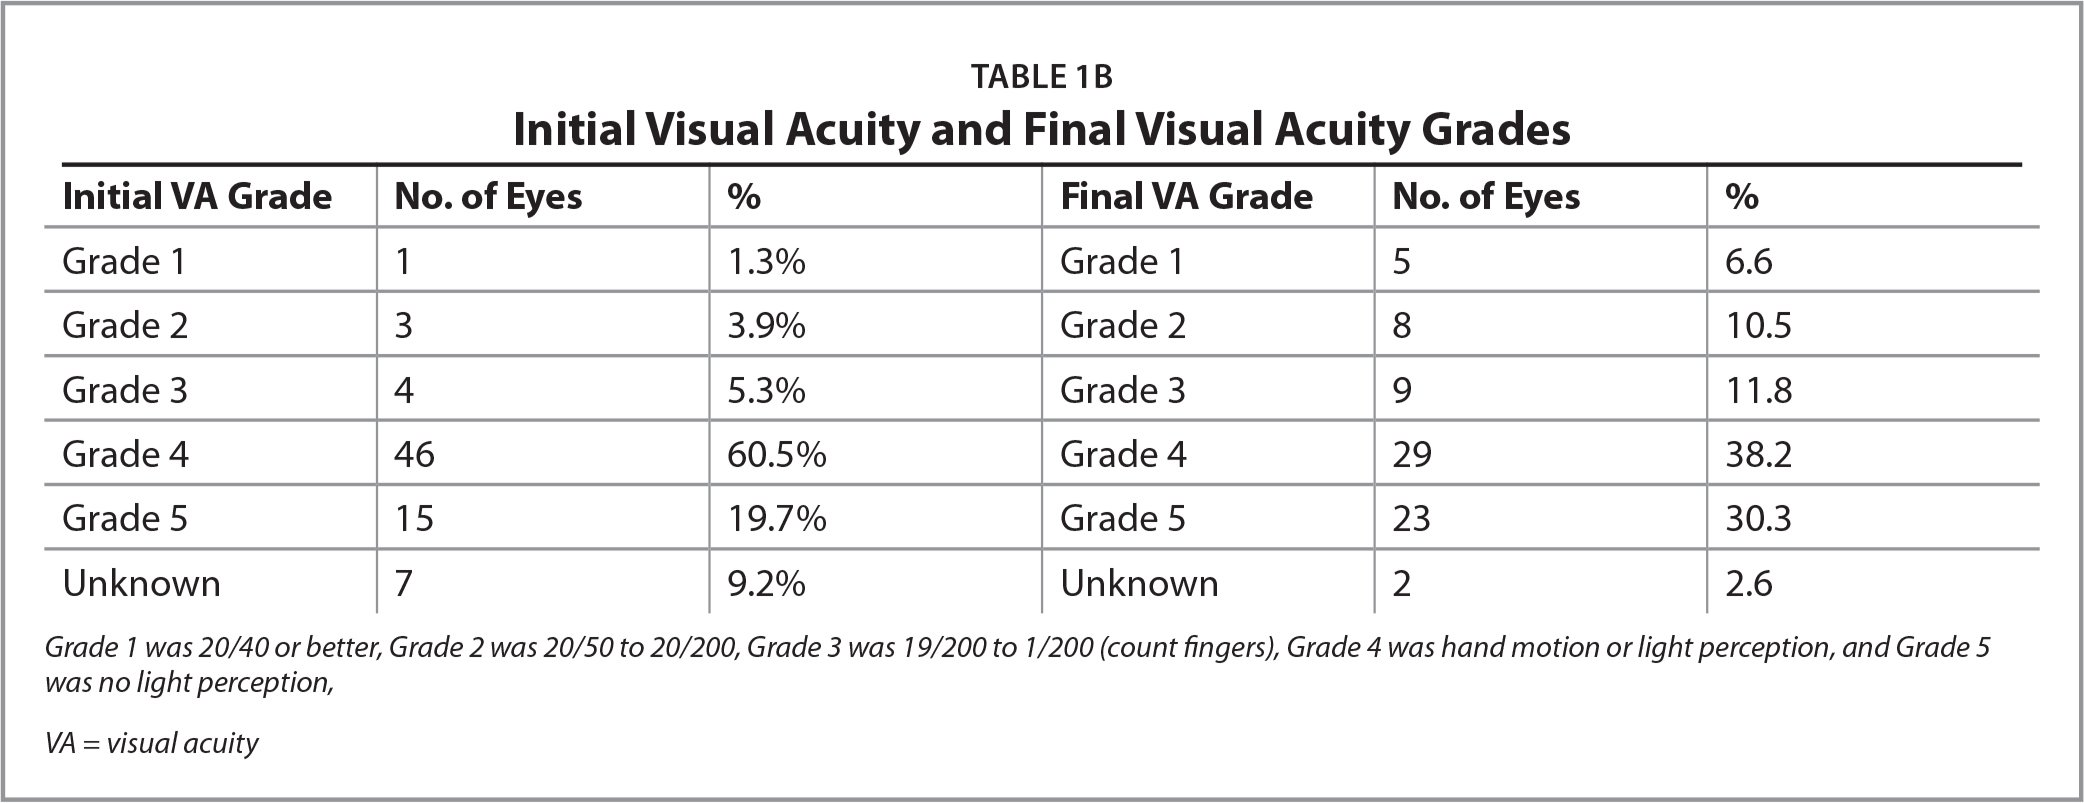 Initial Visual Acuity and Final Visual Acuity Grades